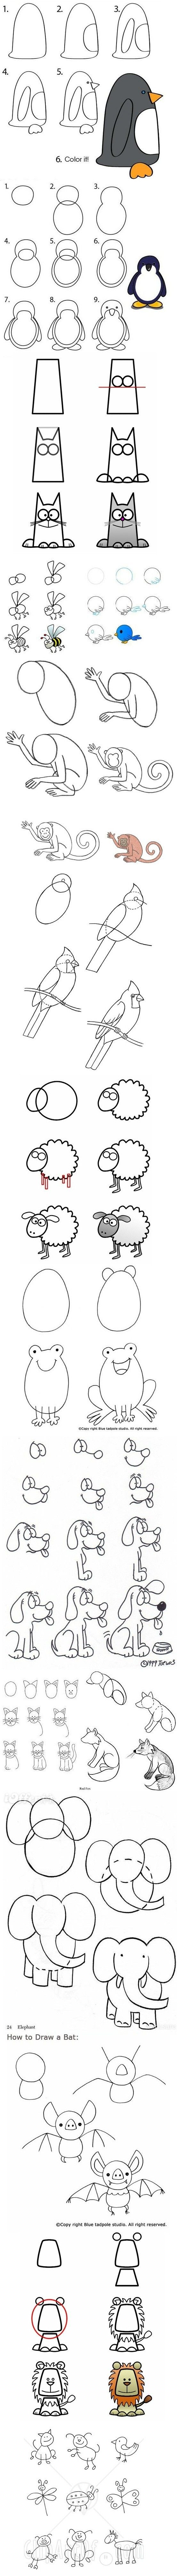 How to Draw Simple Animals